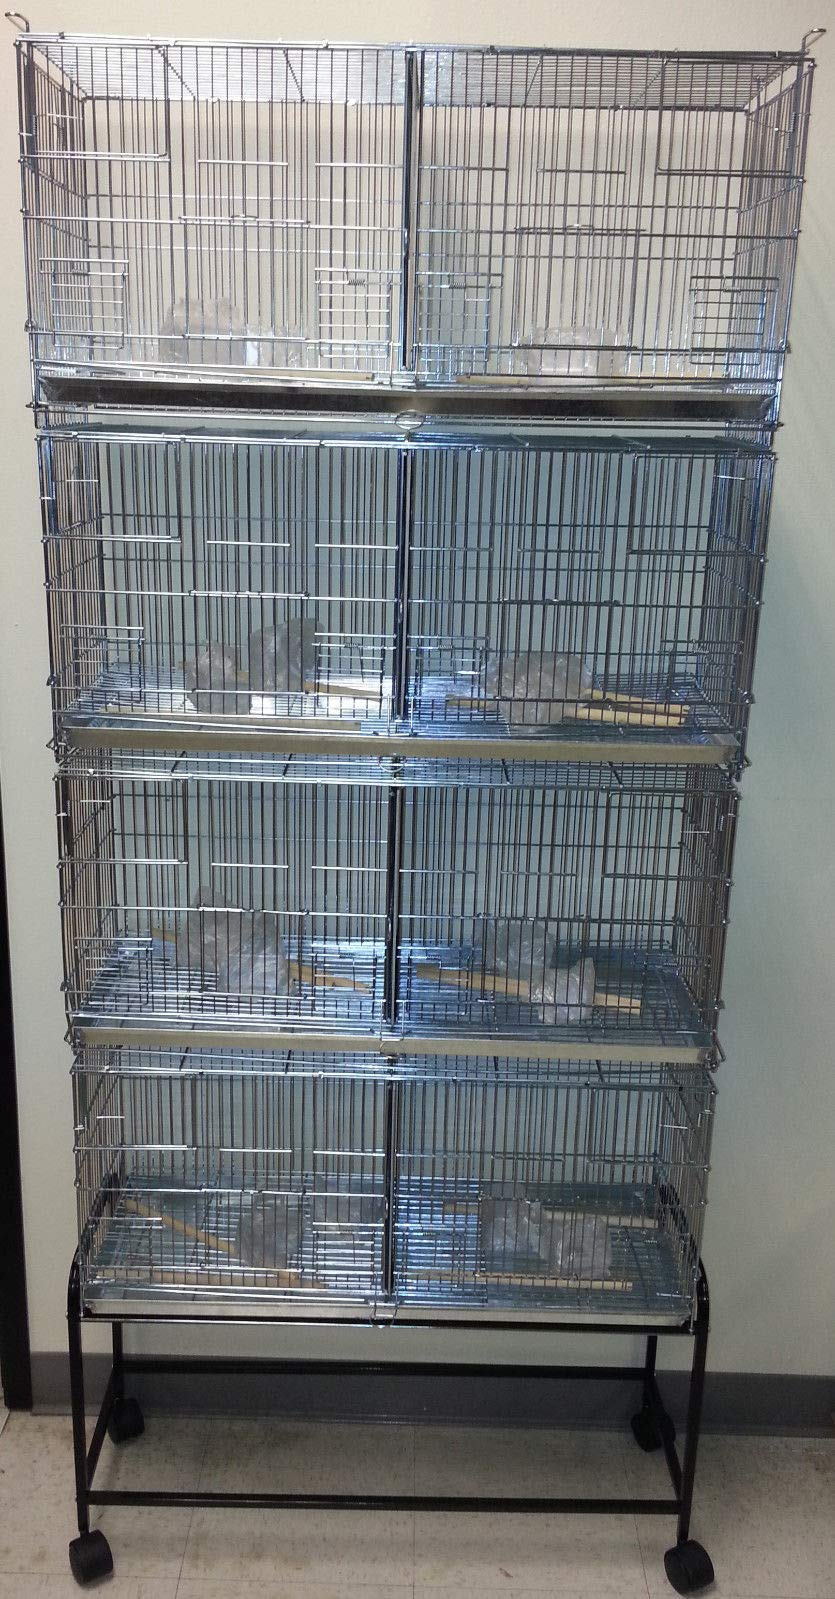 COMBO: Stack and Lock Double Breeder Cage Bird Breeding Cage With Removable Divider And Breeder Doors 4 Of 26.5'' x 11'' x 15''H Cages *Galvanized* And One Stand Black by Mcage